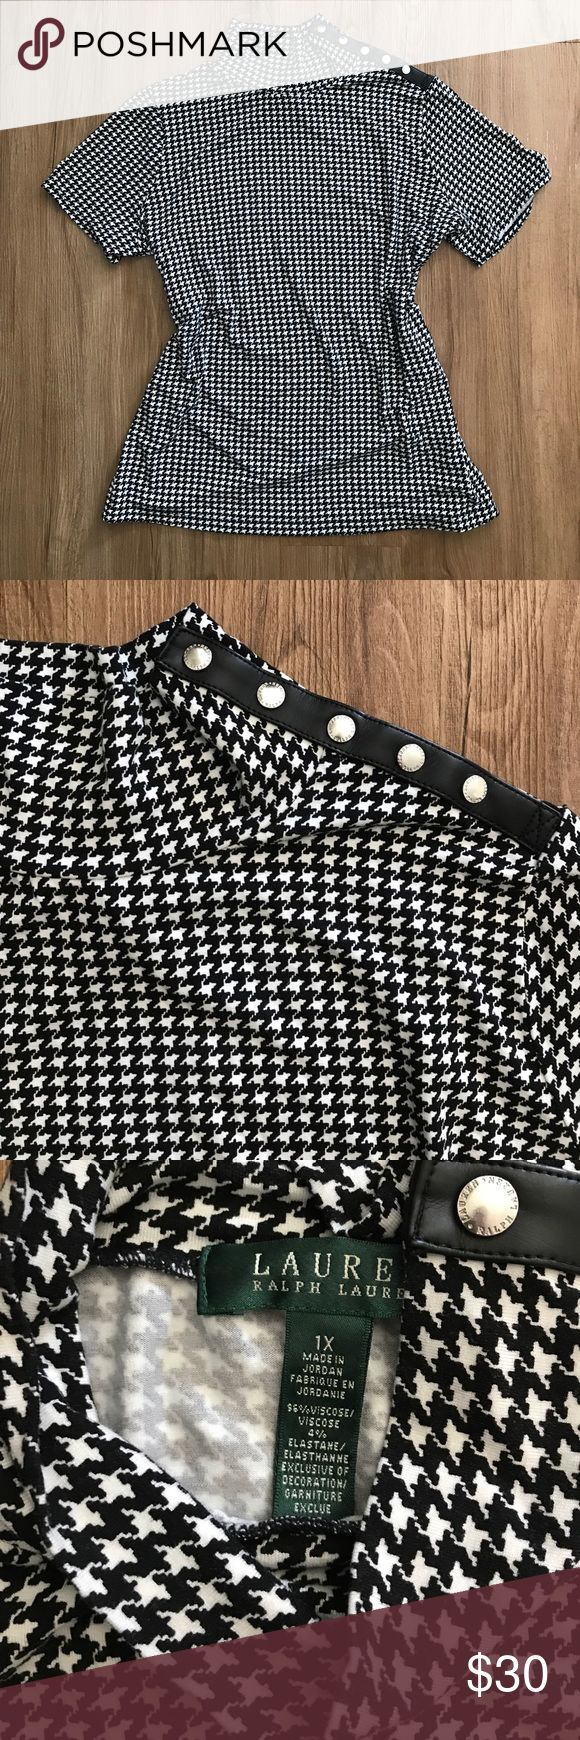 Ralph Lauren Houndstooth top Size 1X, women's, black and white houndstooth pattern, stretchy material, fitted, never worn, 96% viscose, 4% elastane,  faux leather and silver snap detail on left shoulder Lauren Ralph Lauren Tops Tees - Short Sleeve